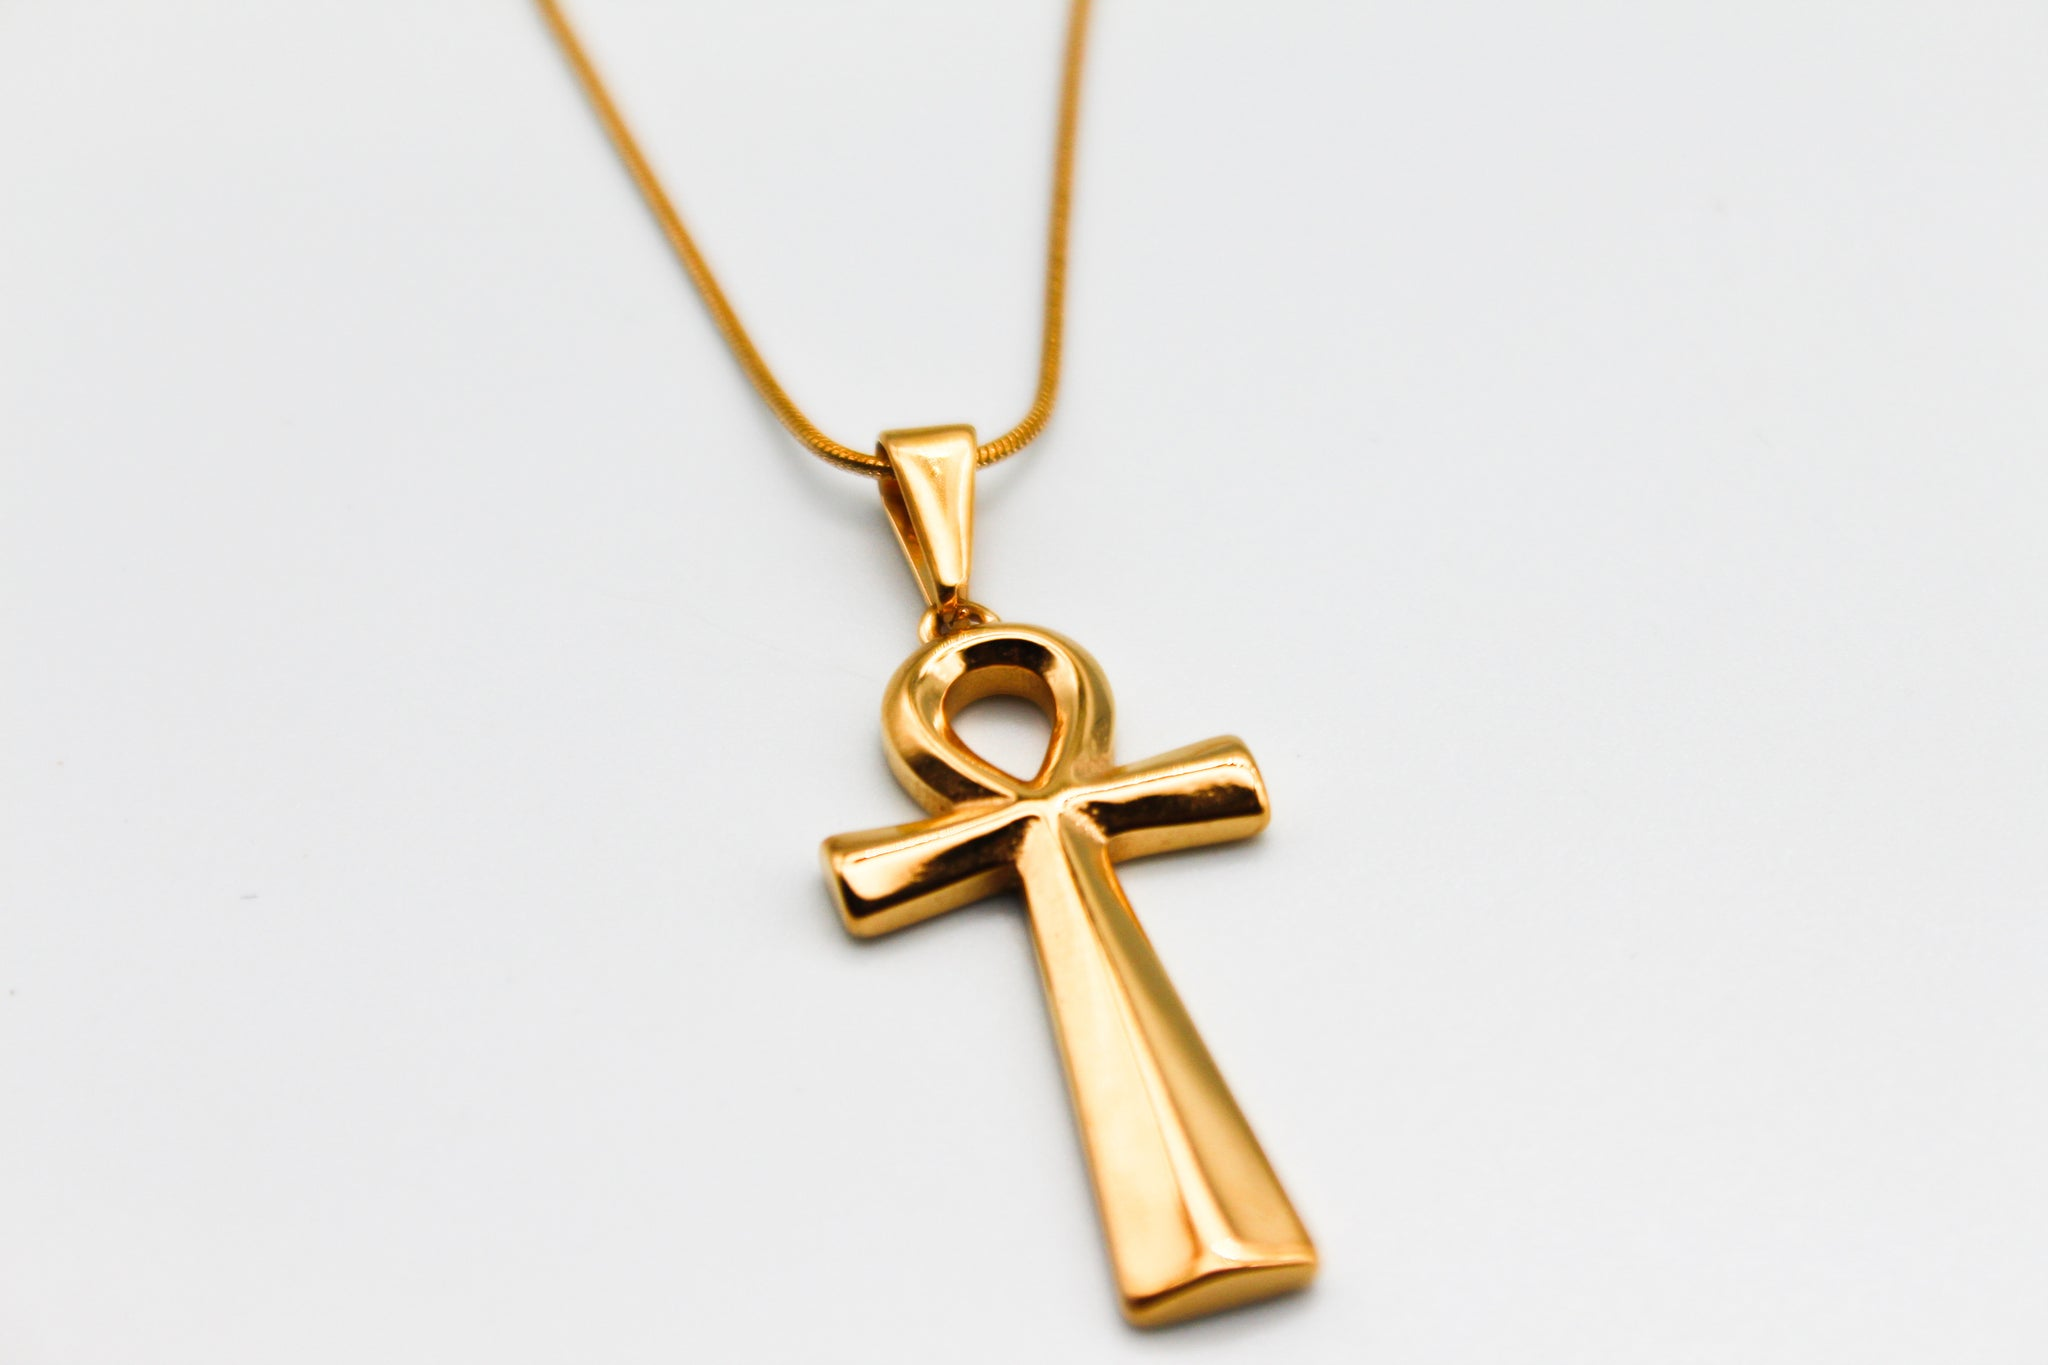 18K Ankh Necklace